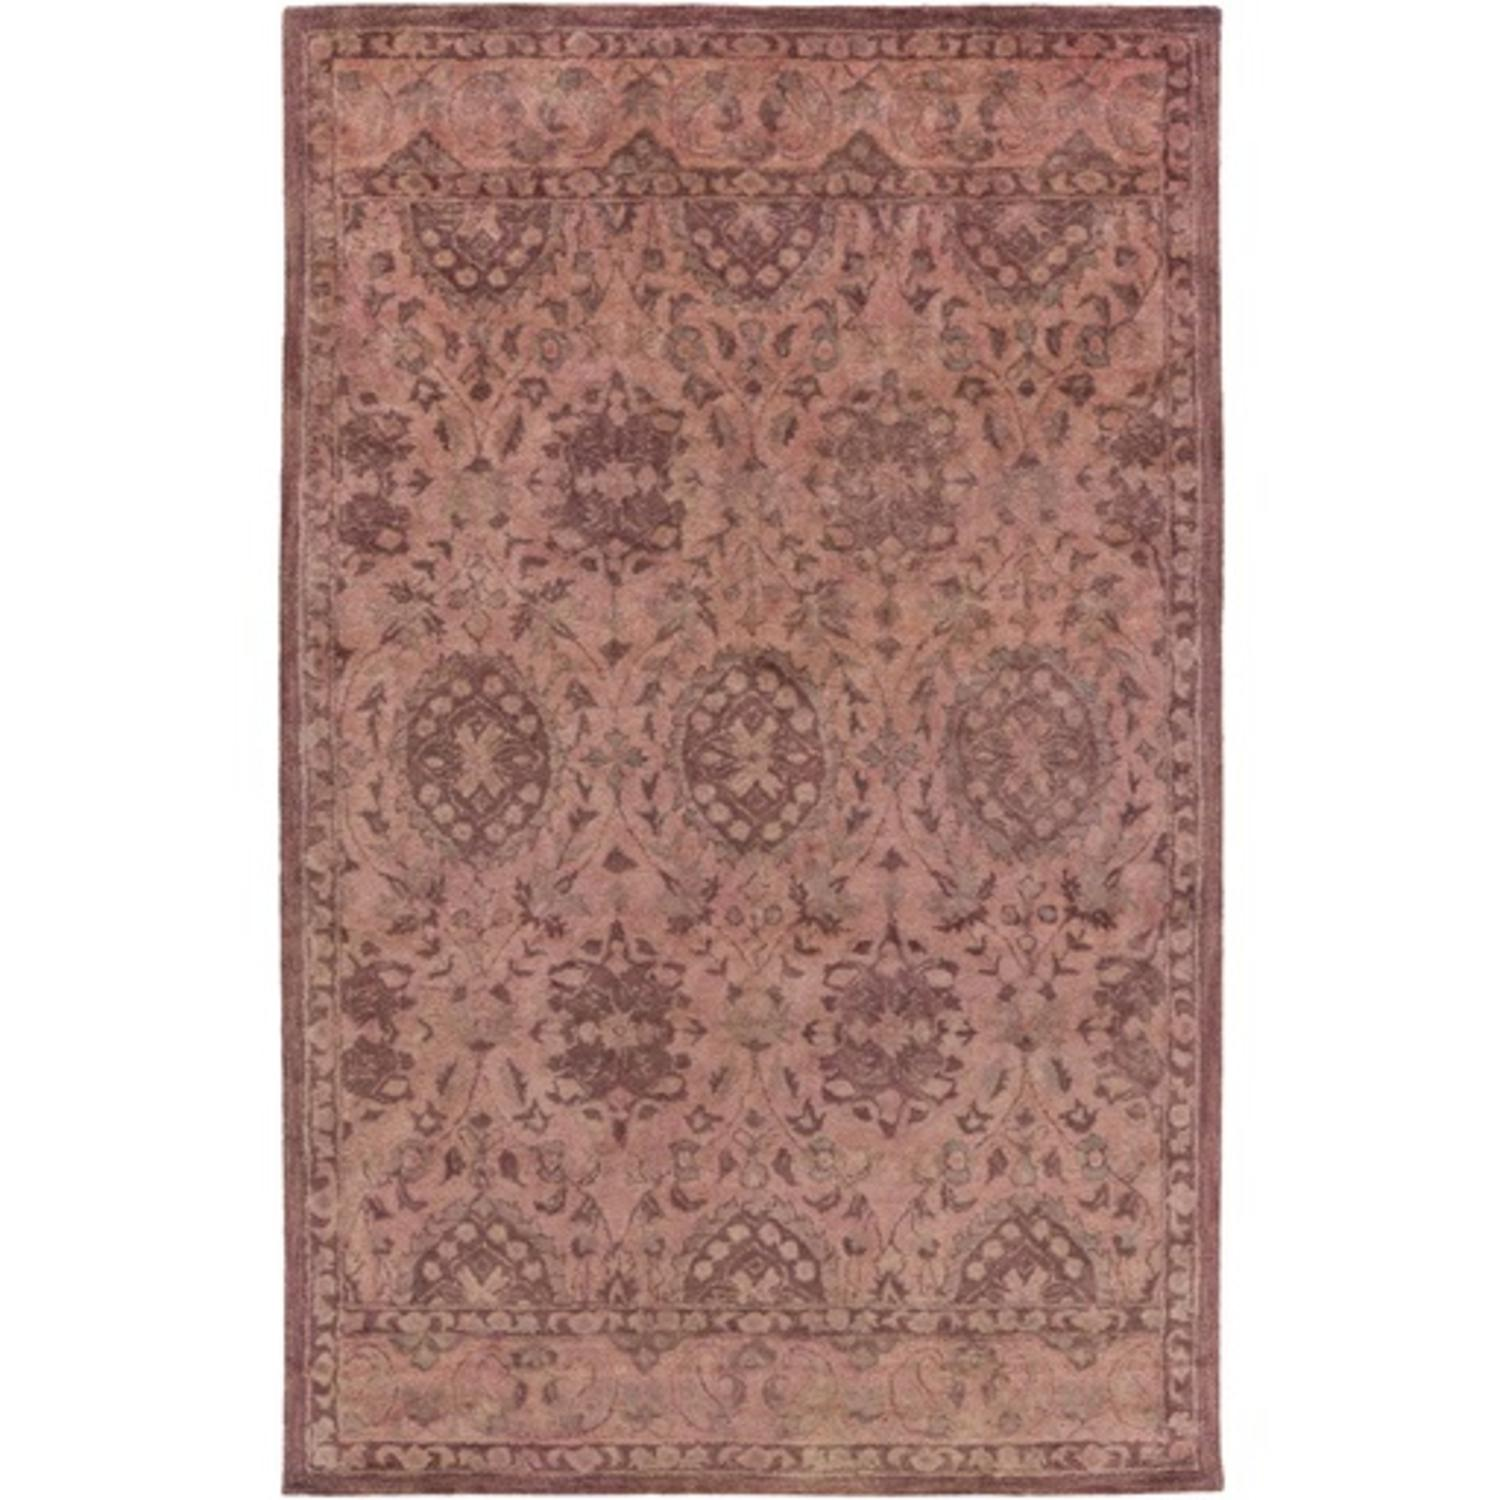 8' x 11' Berber Garden Salmon Pink and Shaded Gray Wool A...